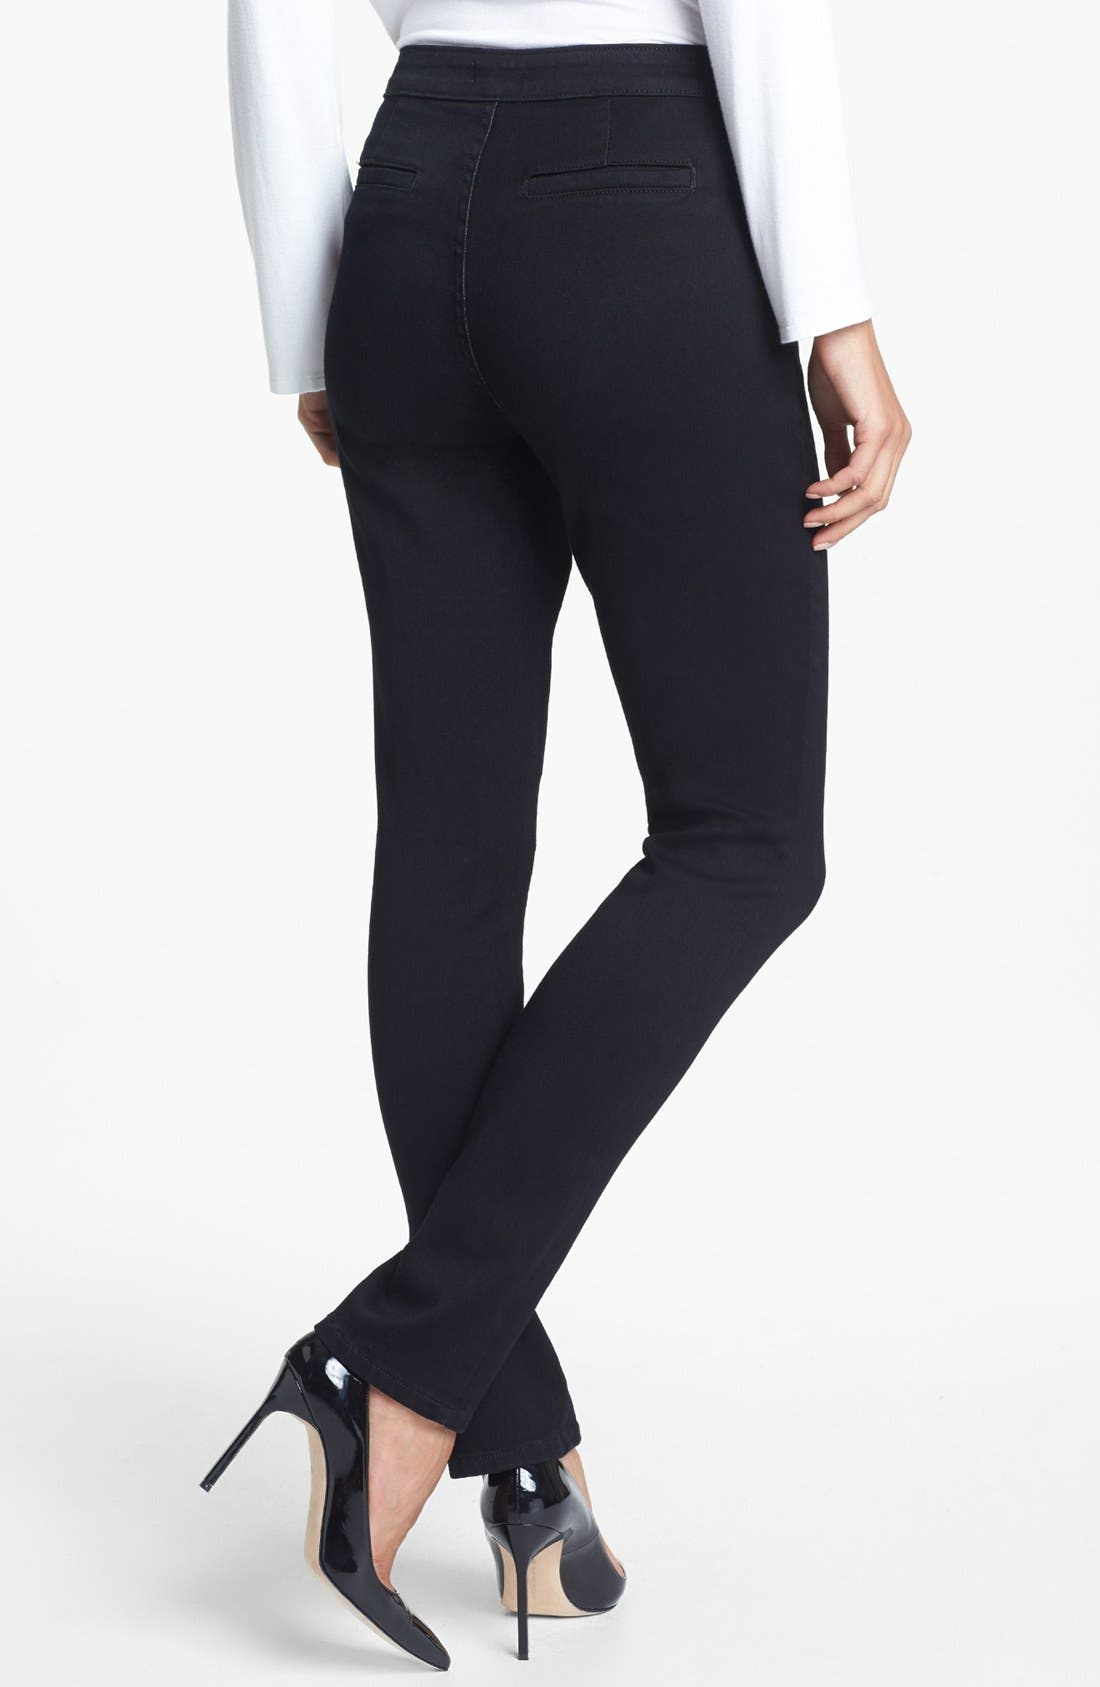 Alternate Image 2  - NYDJ 'Lotus' Stretch Skinny Jeans (Overdye Black)